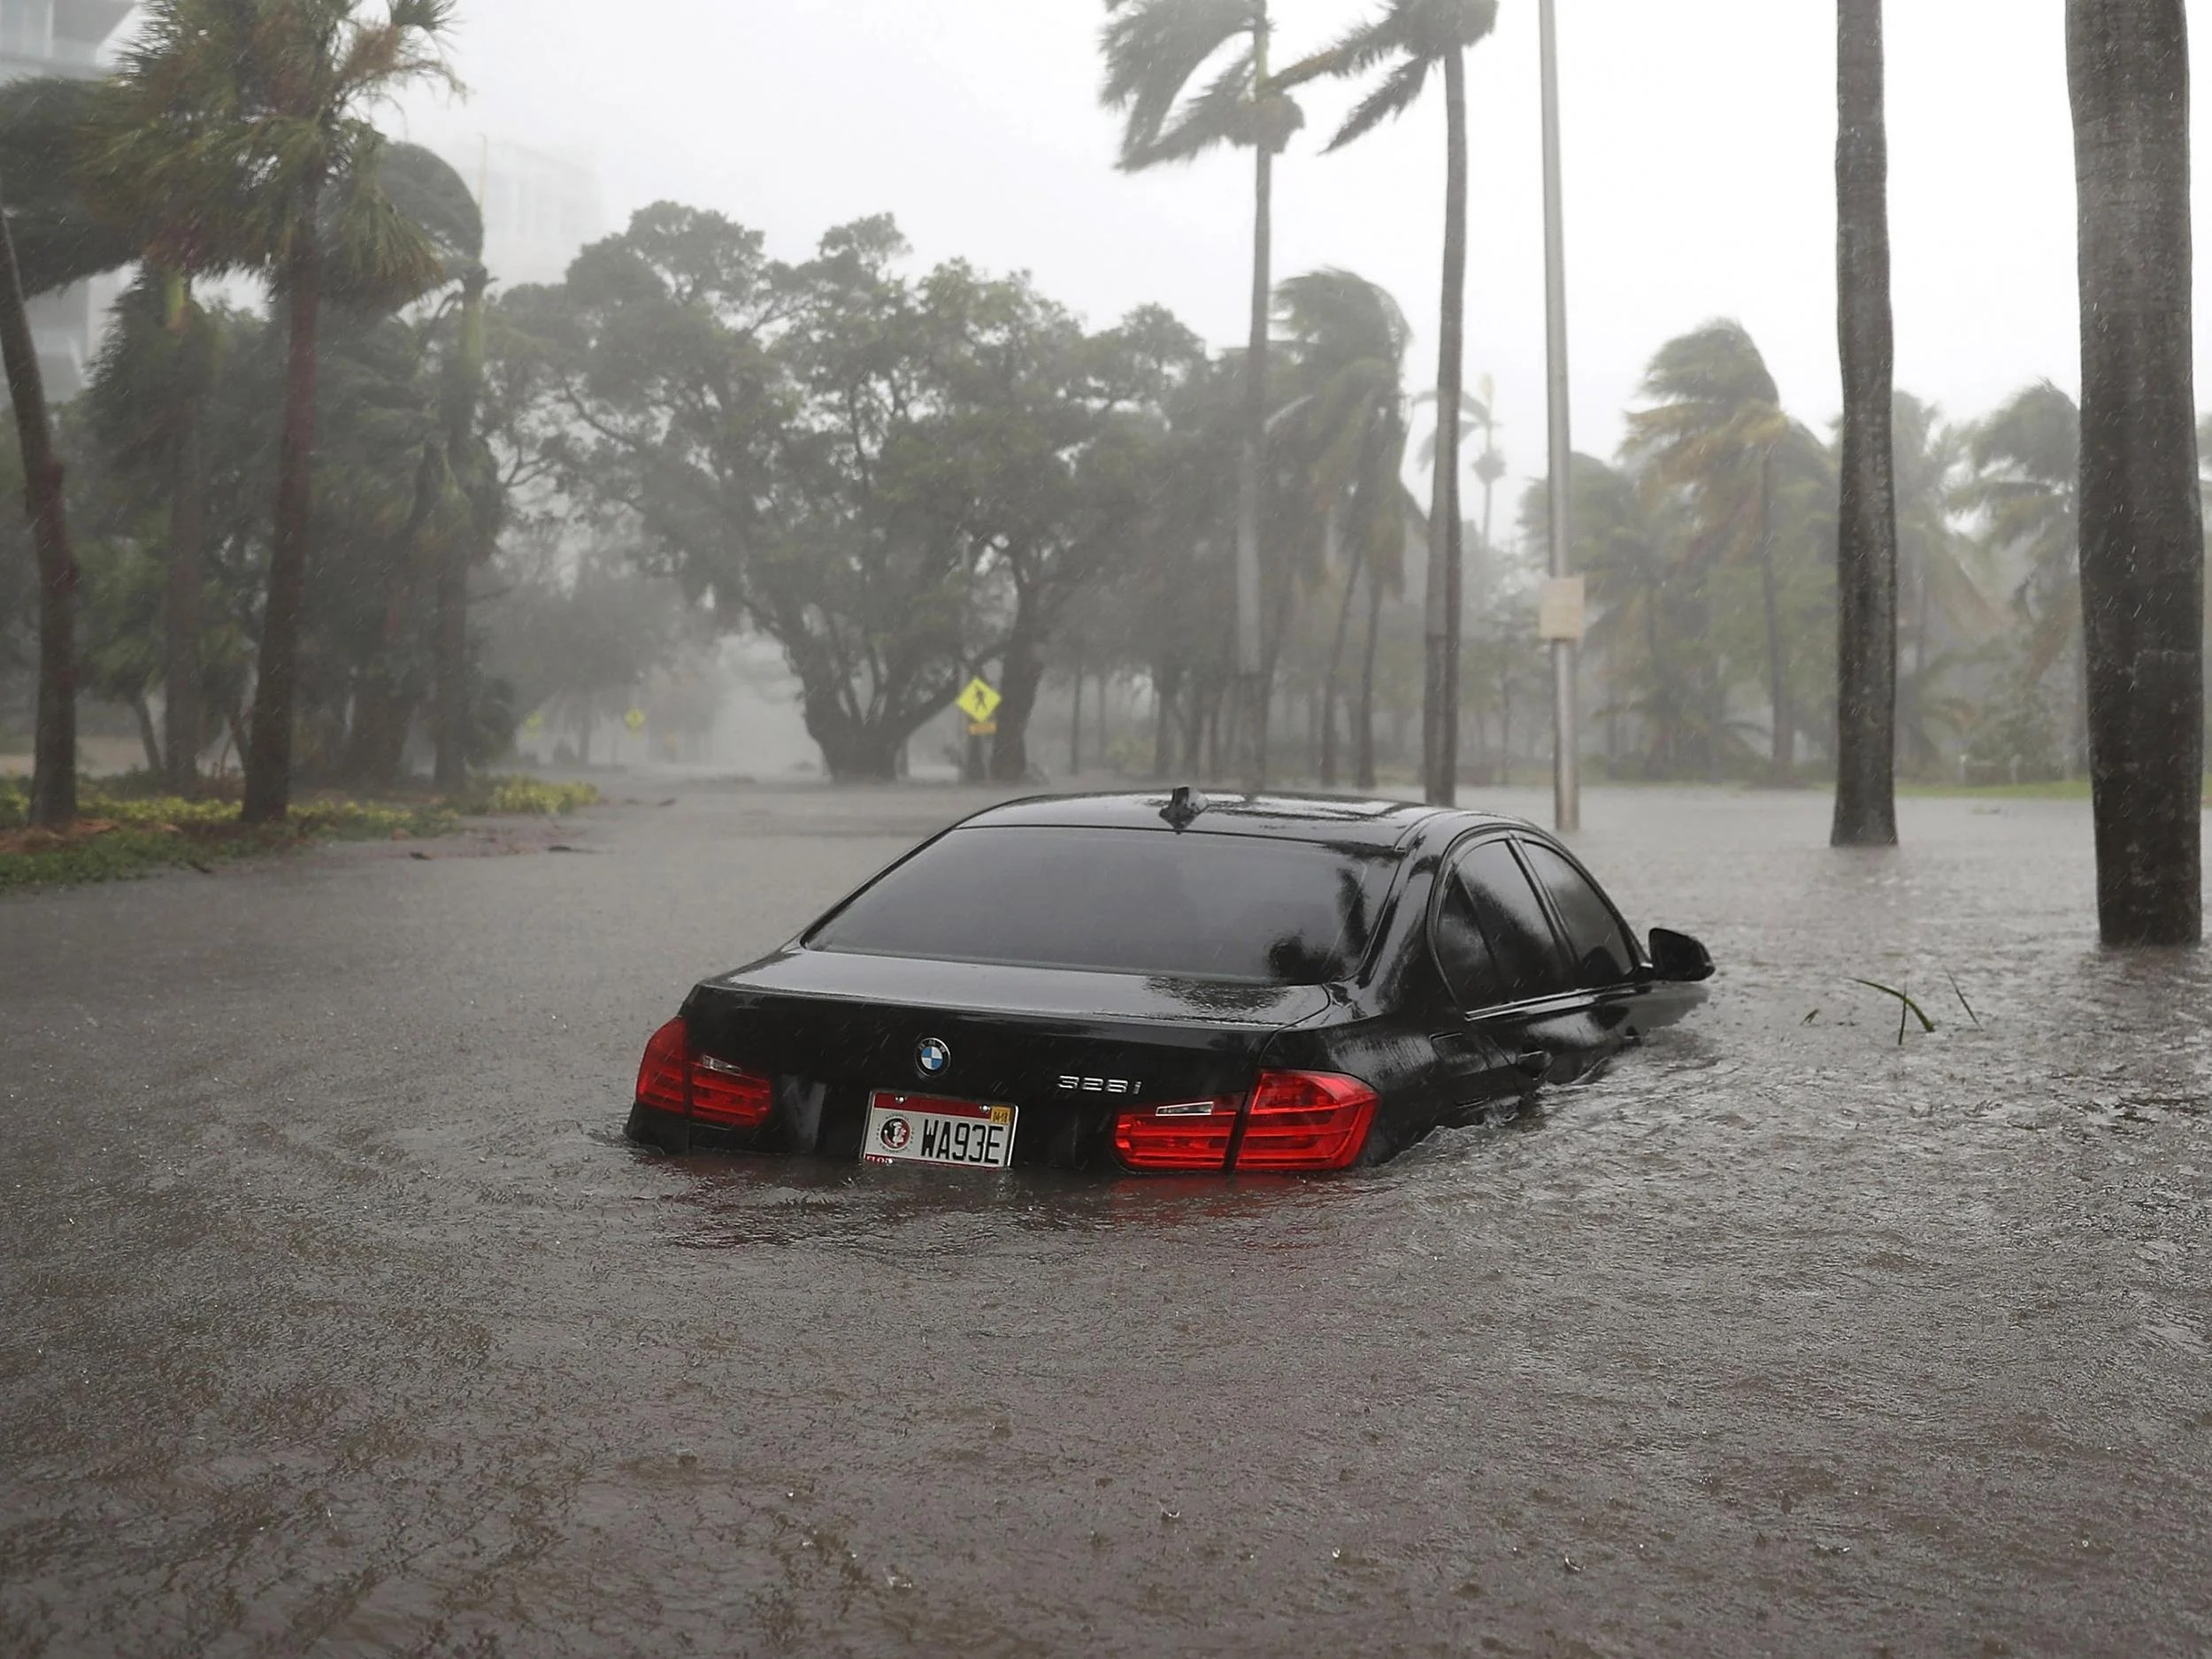 Coastal cities like Miami have already experienced serious flooding thanks to recent hurricanes, and researchers warn that inundation with water could endanger the region's internet infrastructure